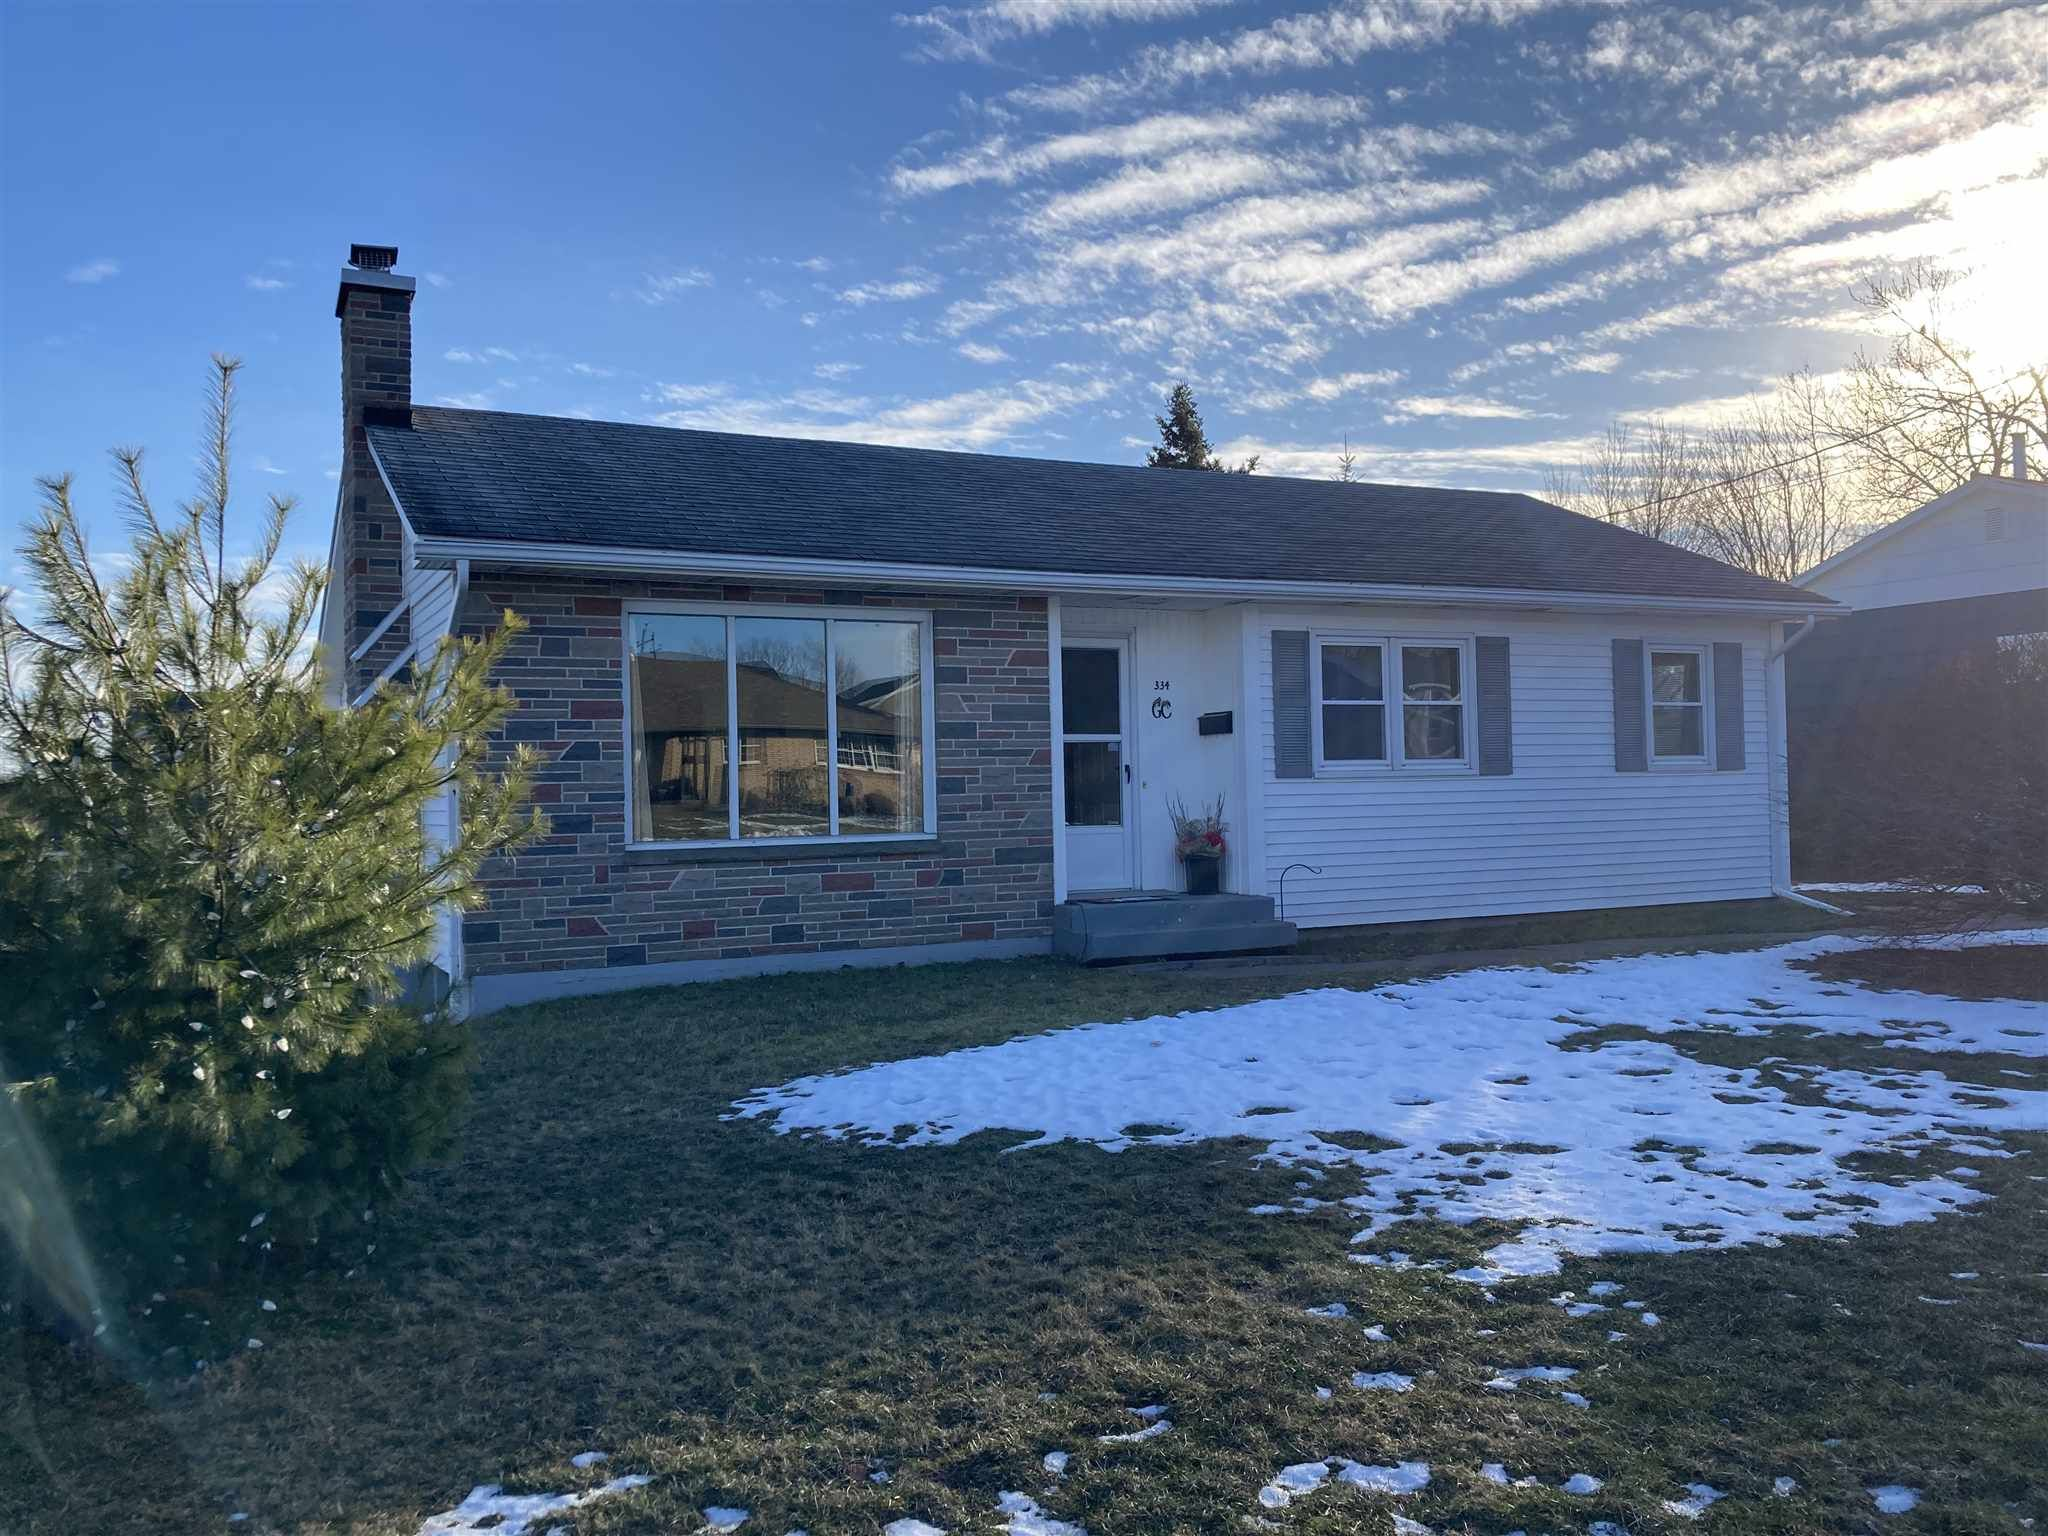 Main Photo: 334 Dunbar Avenue in New Glasgow: 106-New Glasgow, Stellarton Residential for sale (Northern Region)  : MLS®# 202101140